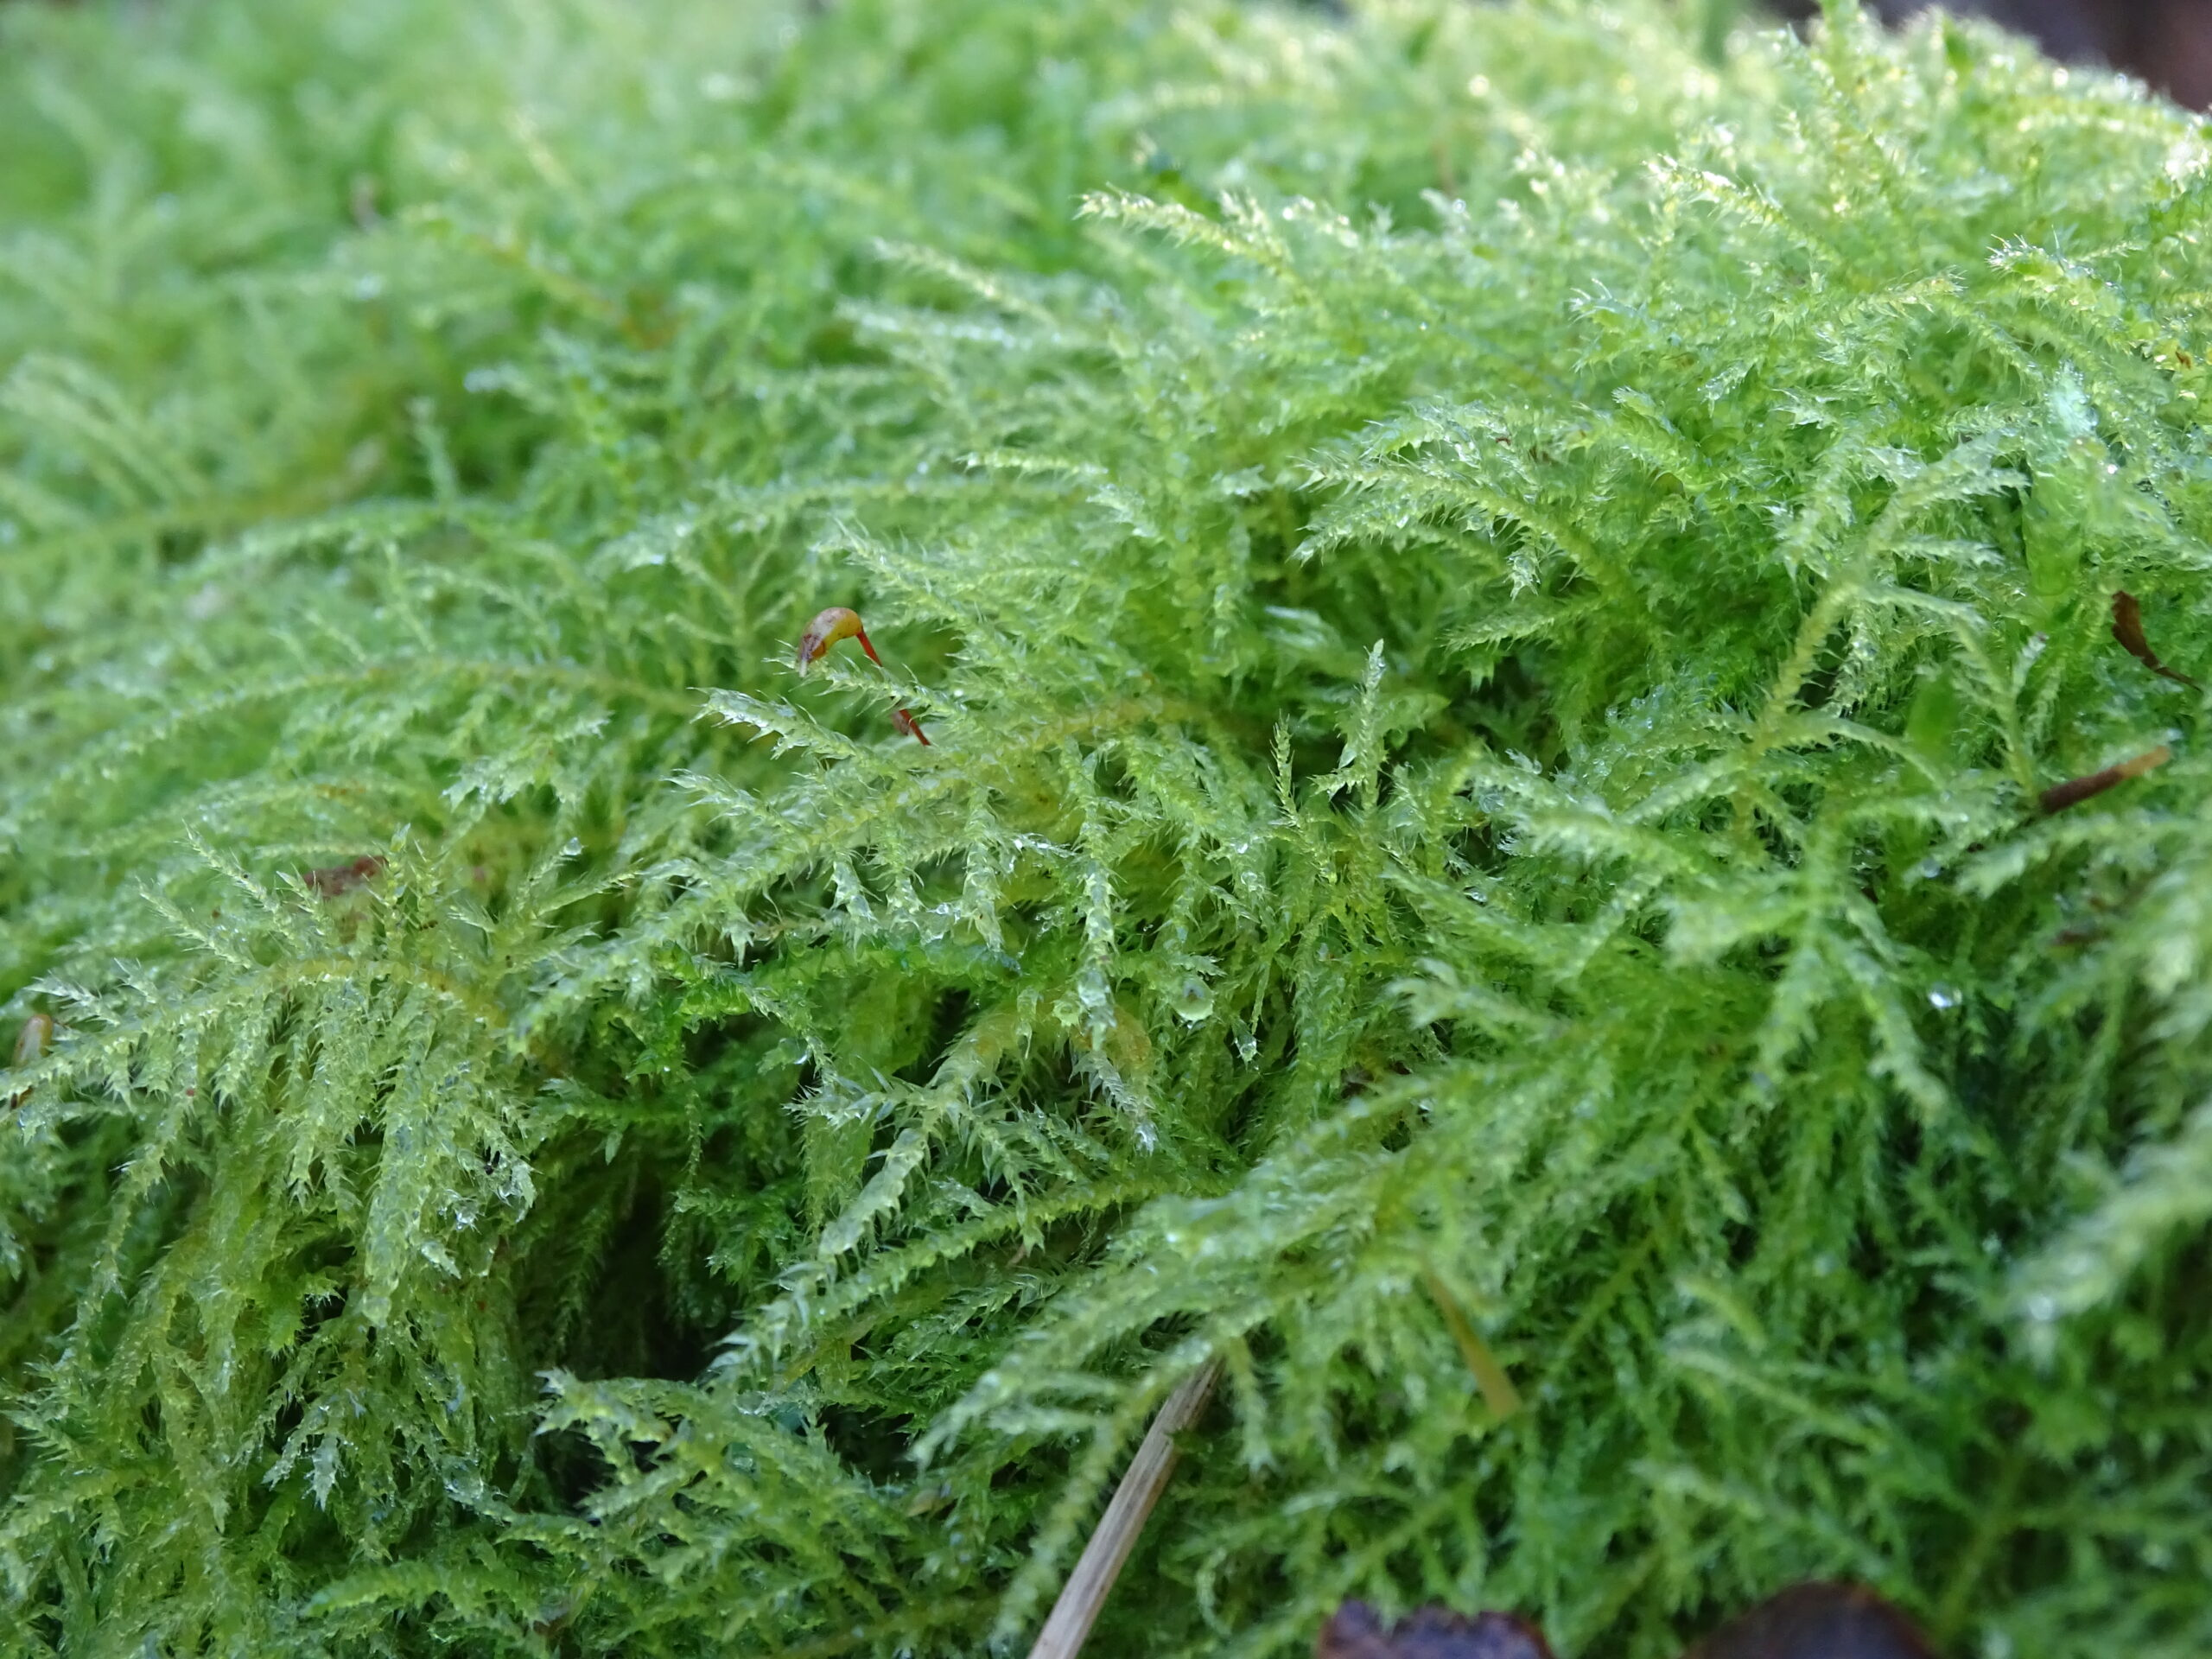 A long thick moss with a single seed head sticking up amidst the leaves